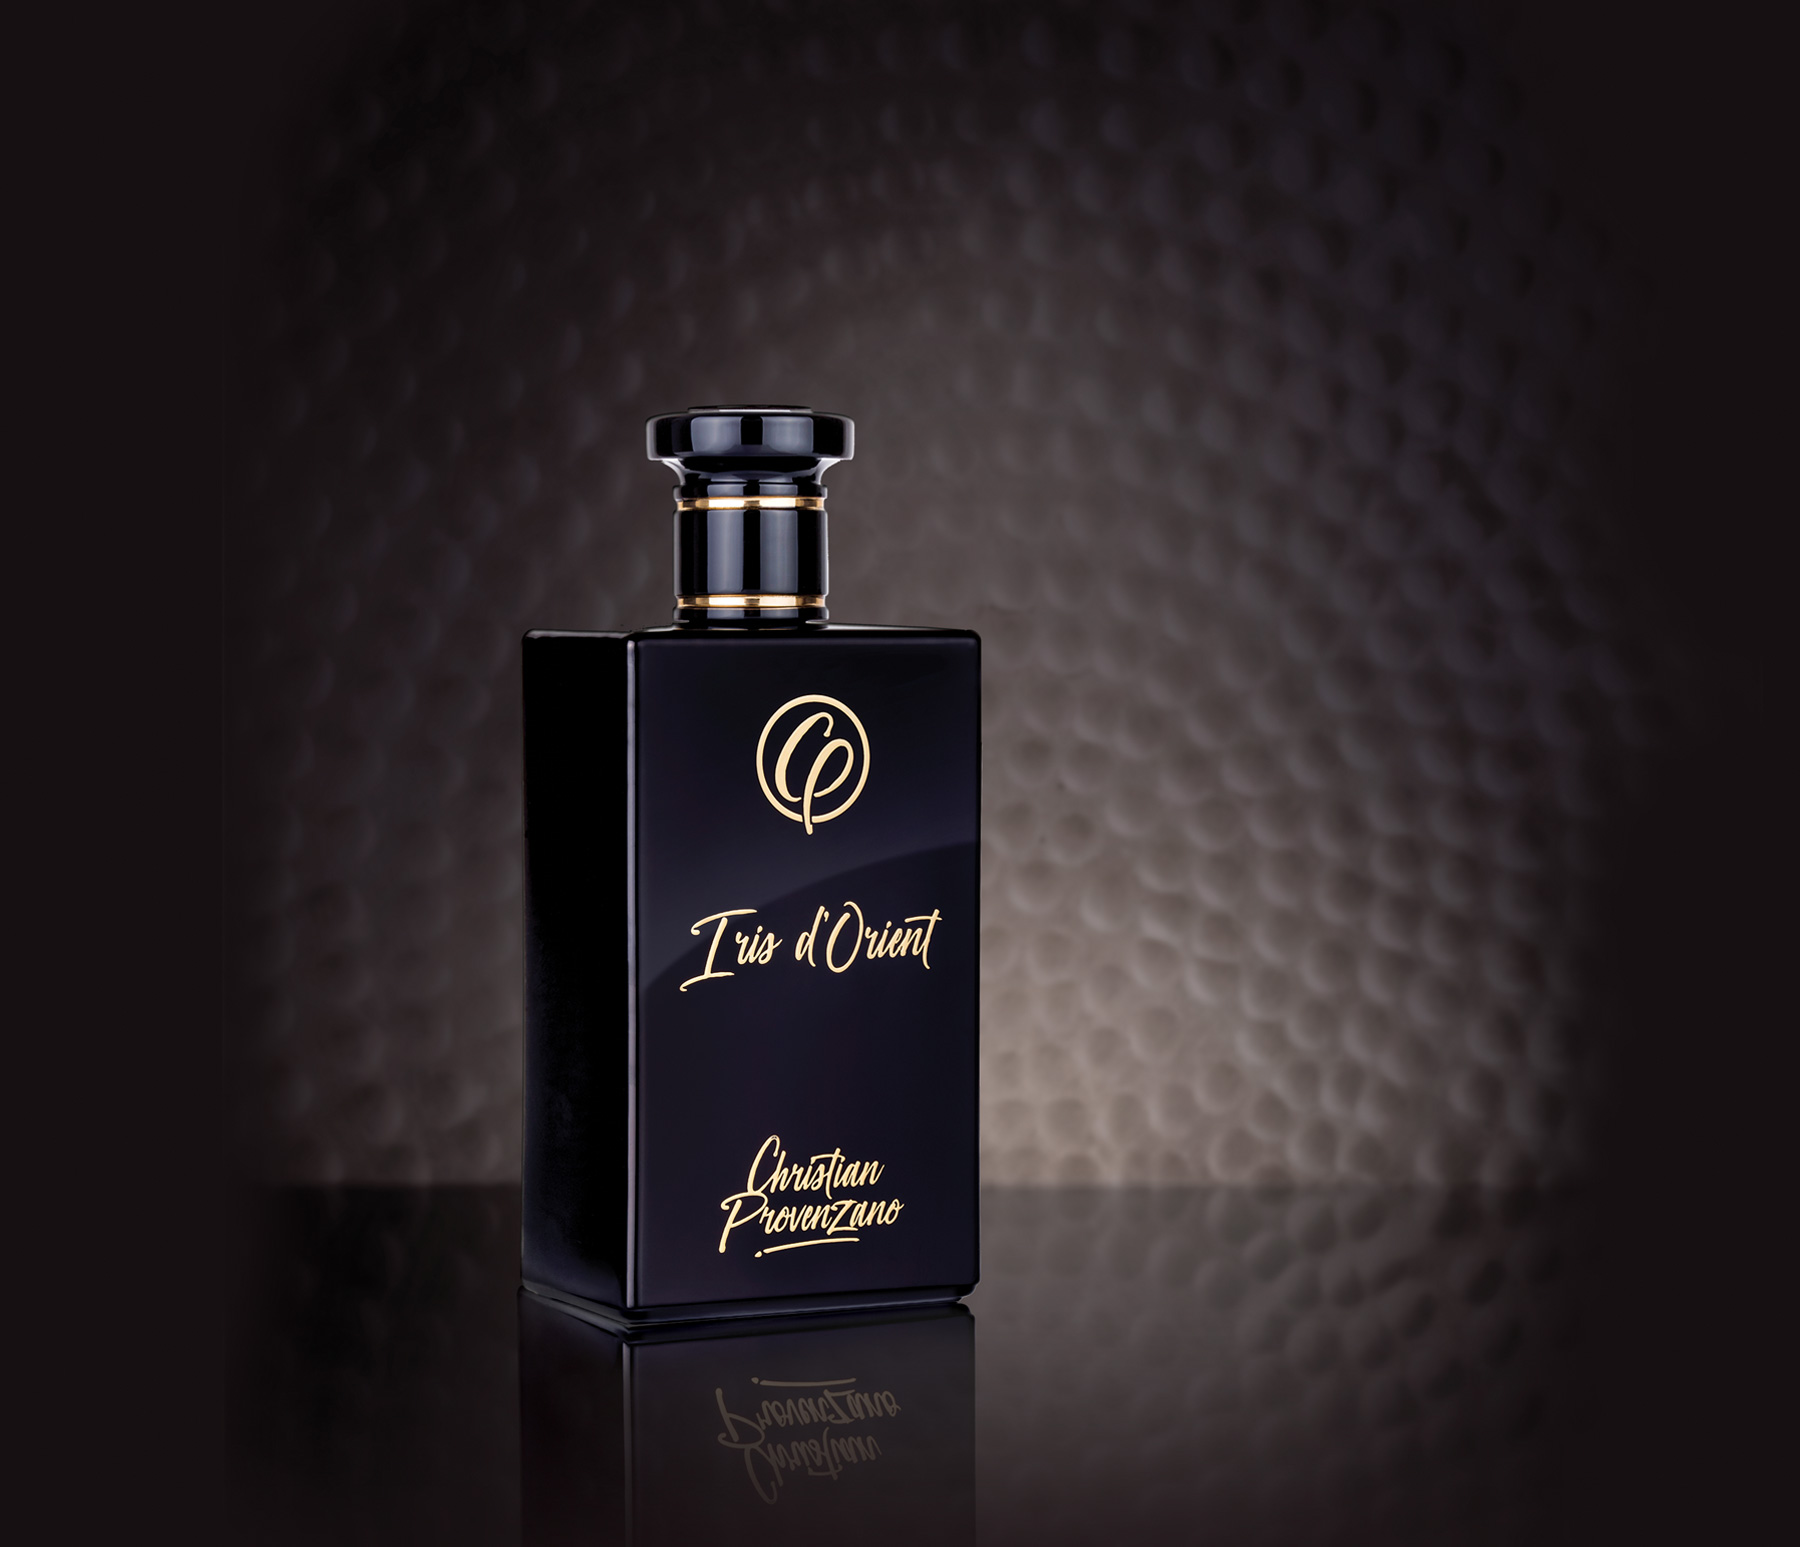 Parfum Diamantform Iris D Orient Christian Provenzano Parfums For Women And Men